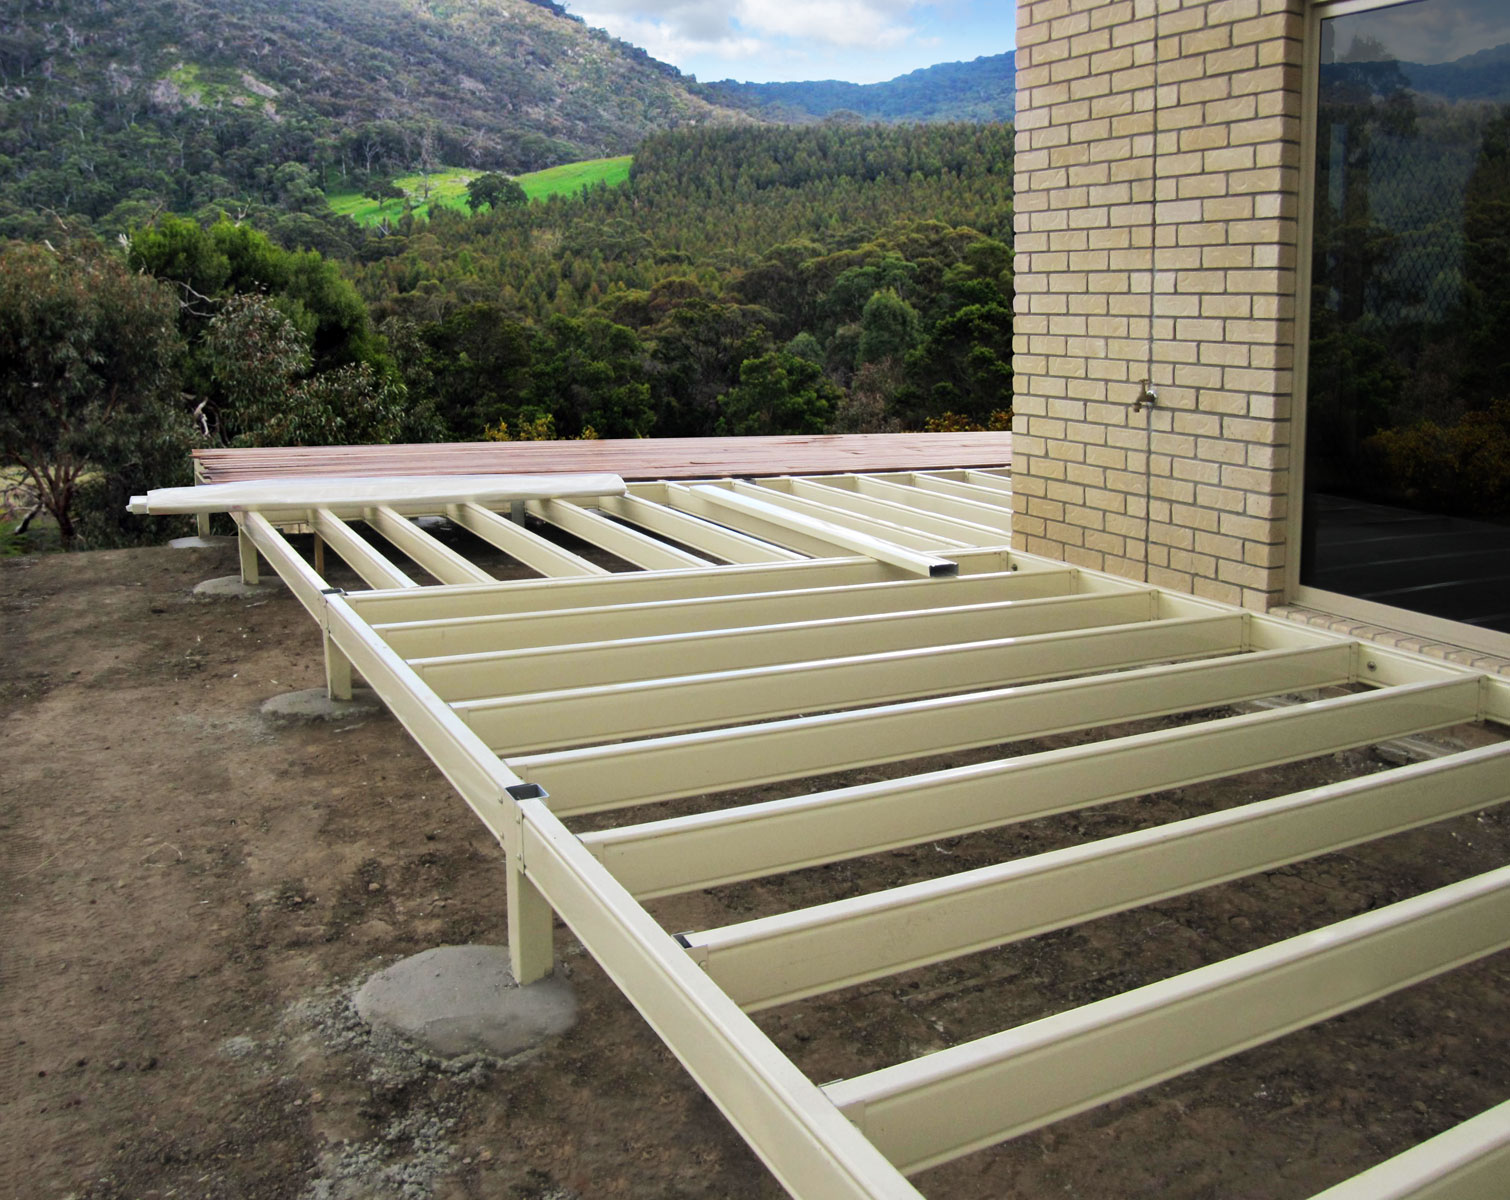 Stratco top deck installation guide